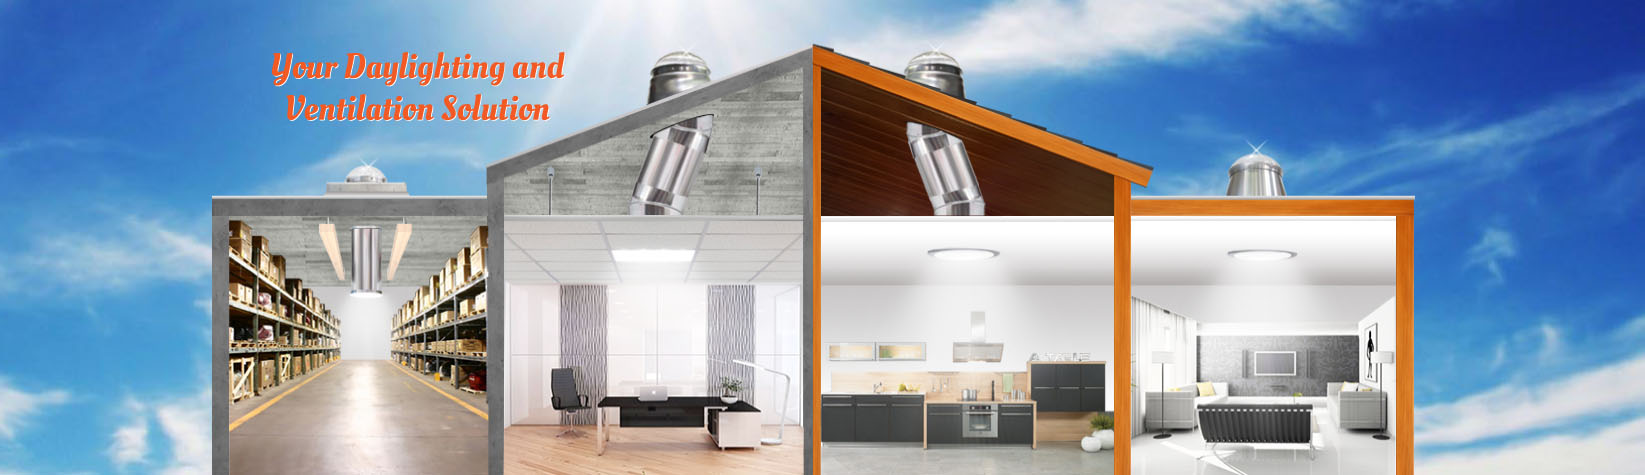 Residential Tubular Skylights